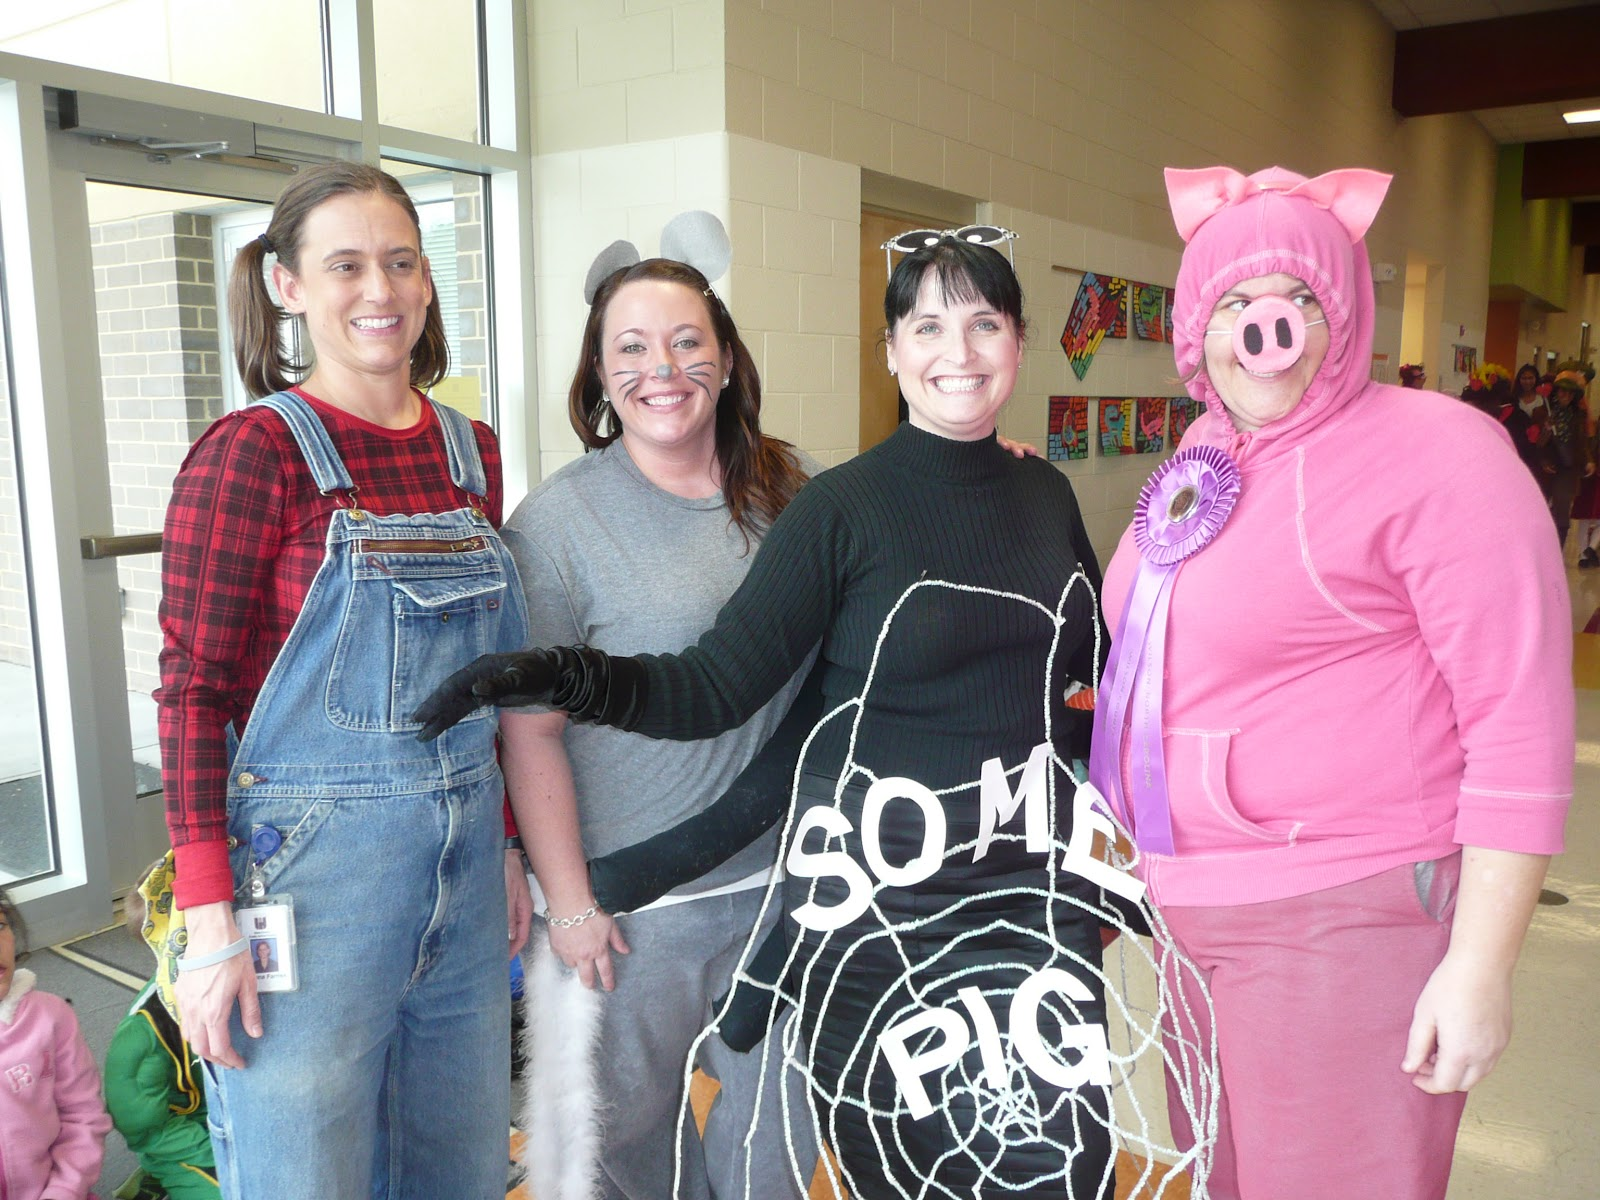 Charlottes web characters ideas for office spirit week view original